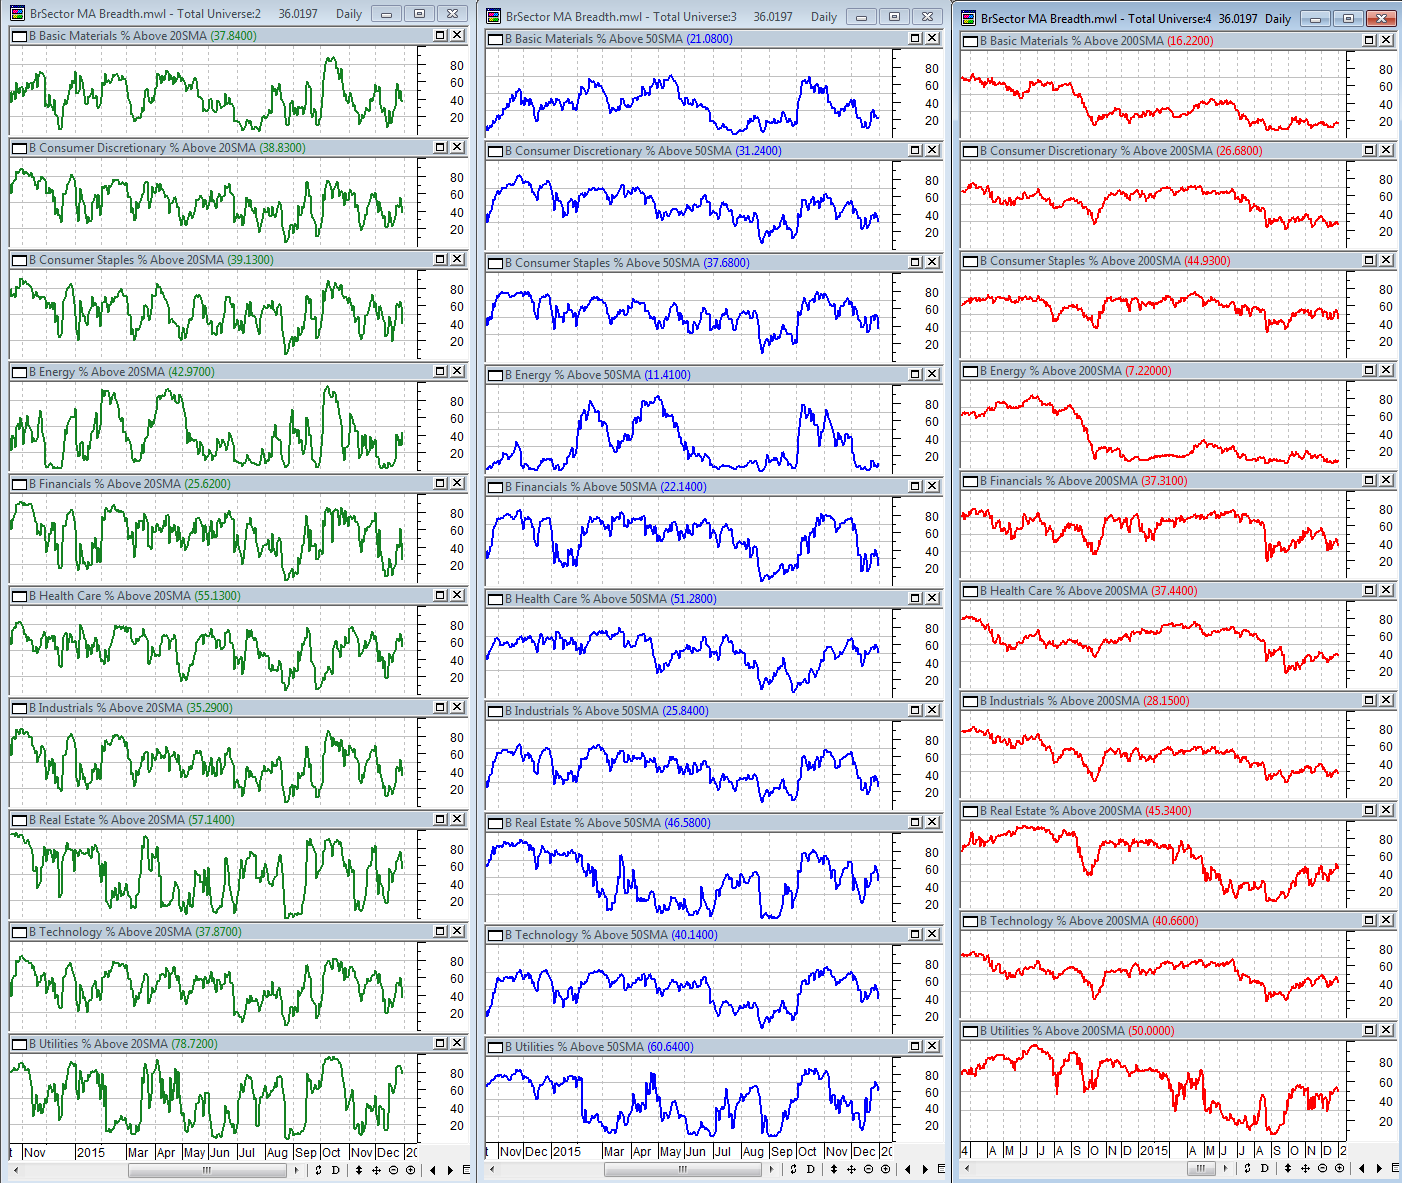 12-31-2015 BSec MA Breadth Dashboard